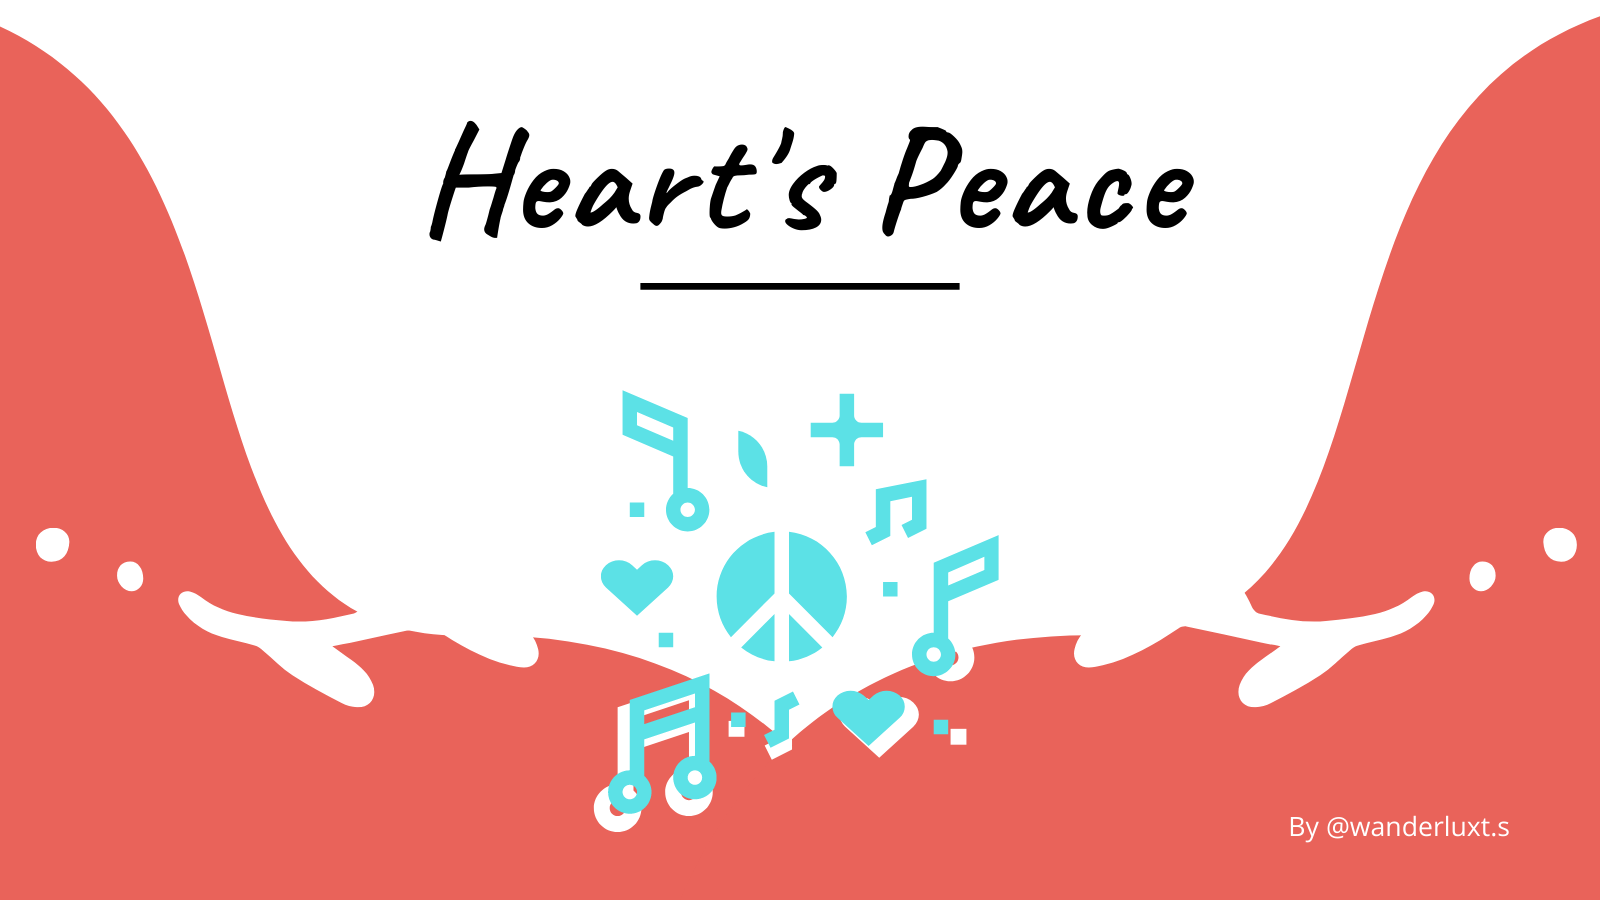 Heart's Peace - Writing Challenge